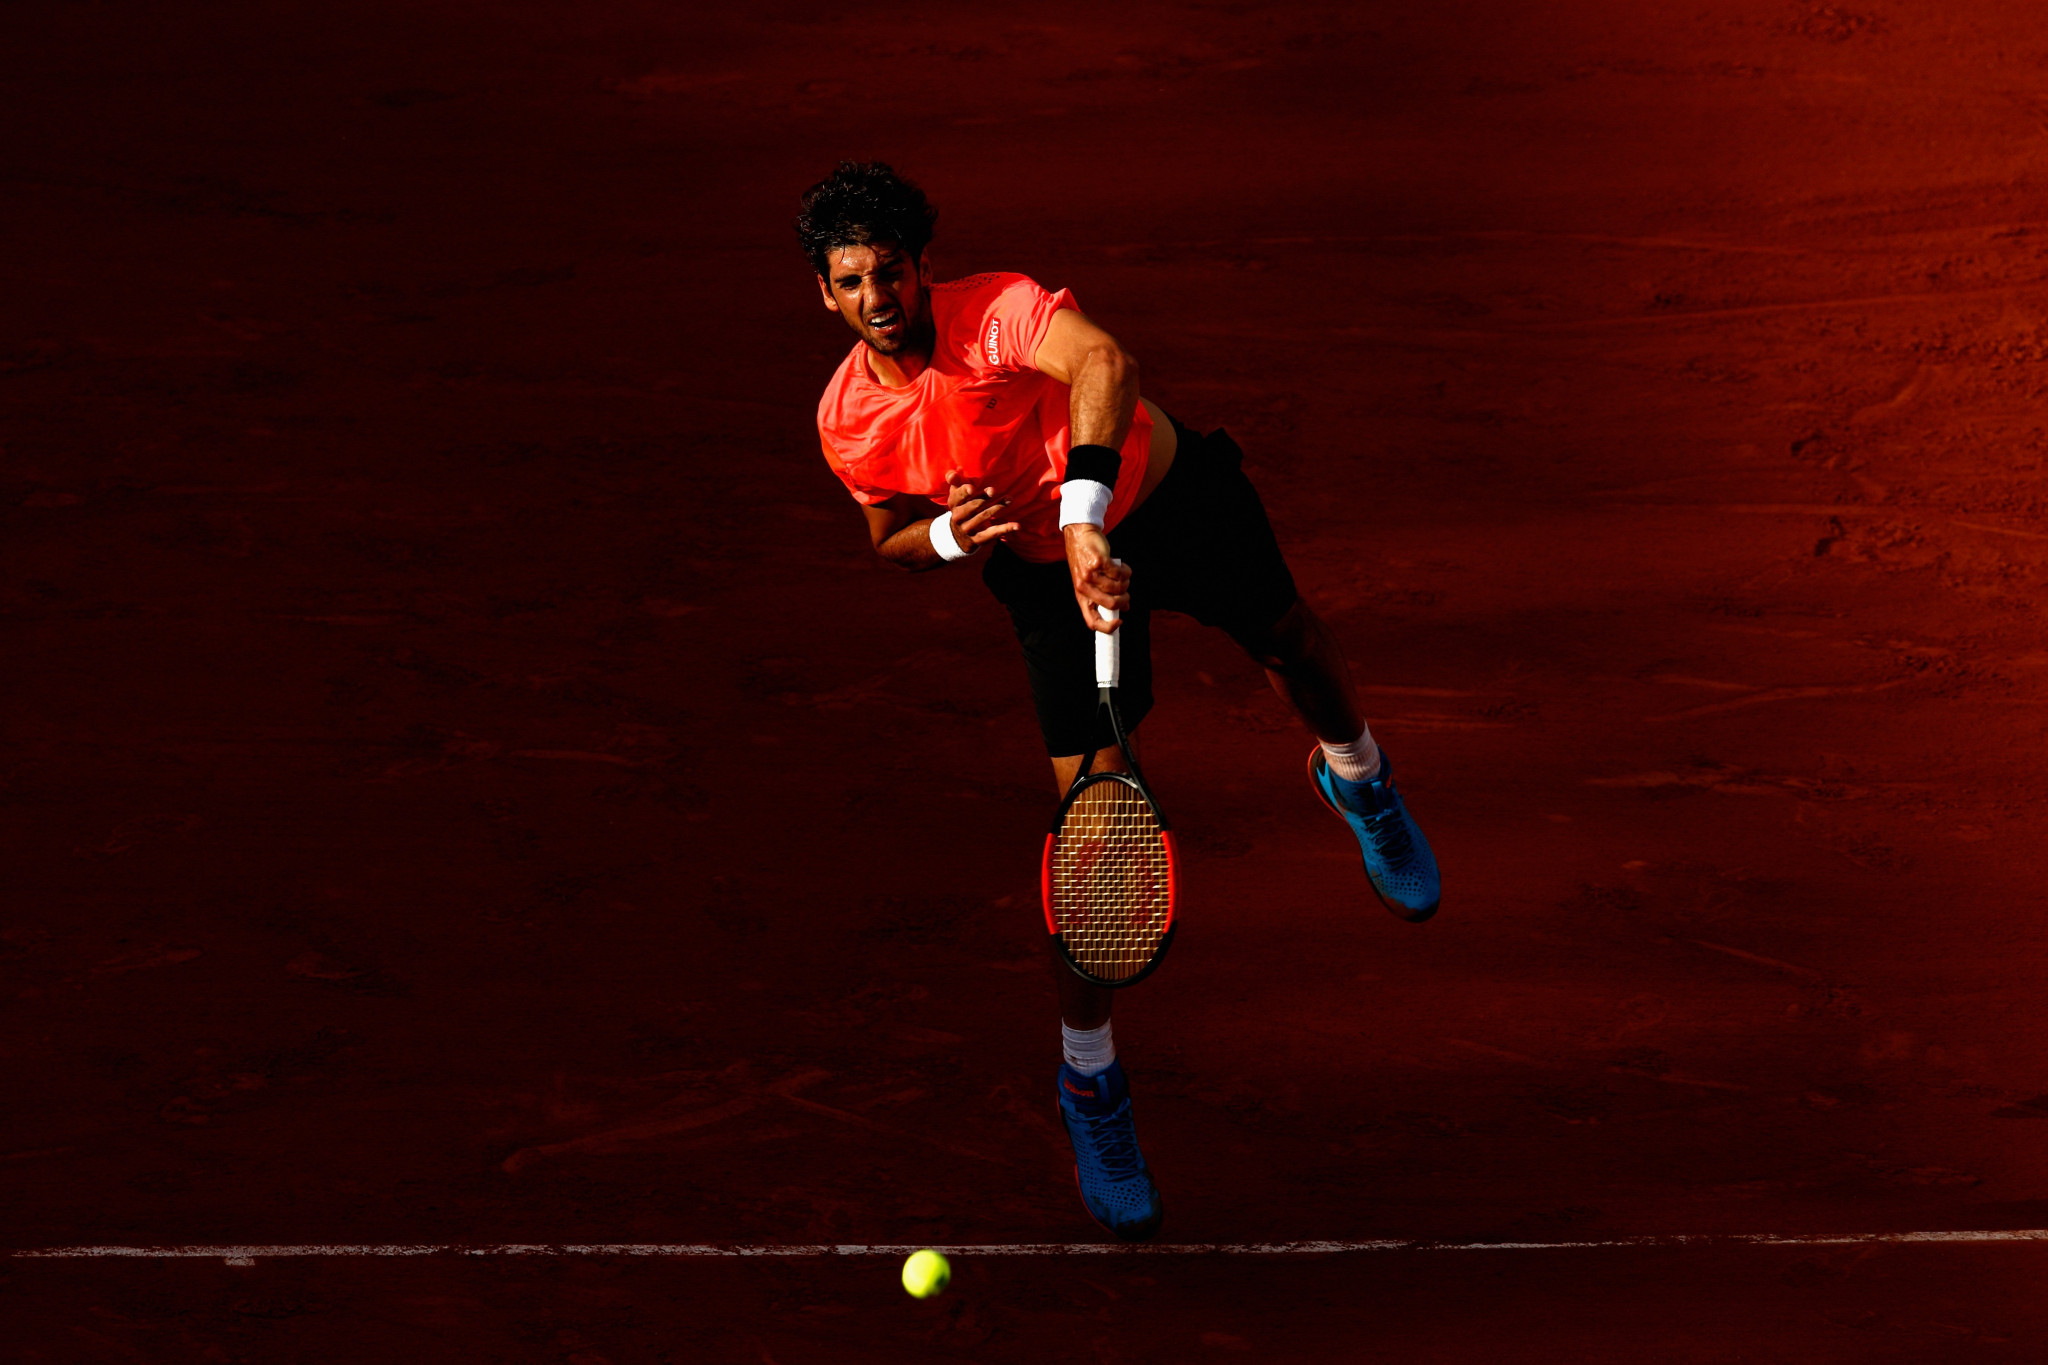 Thomaz Bellucci can play again from February 1 ©Getty Images